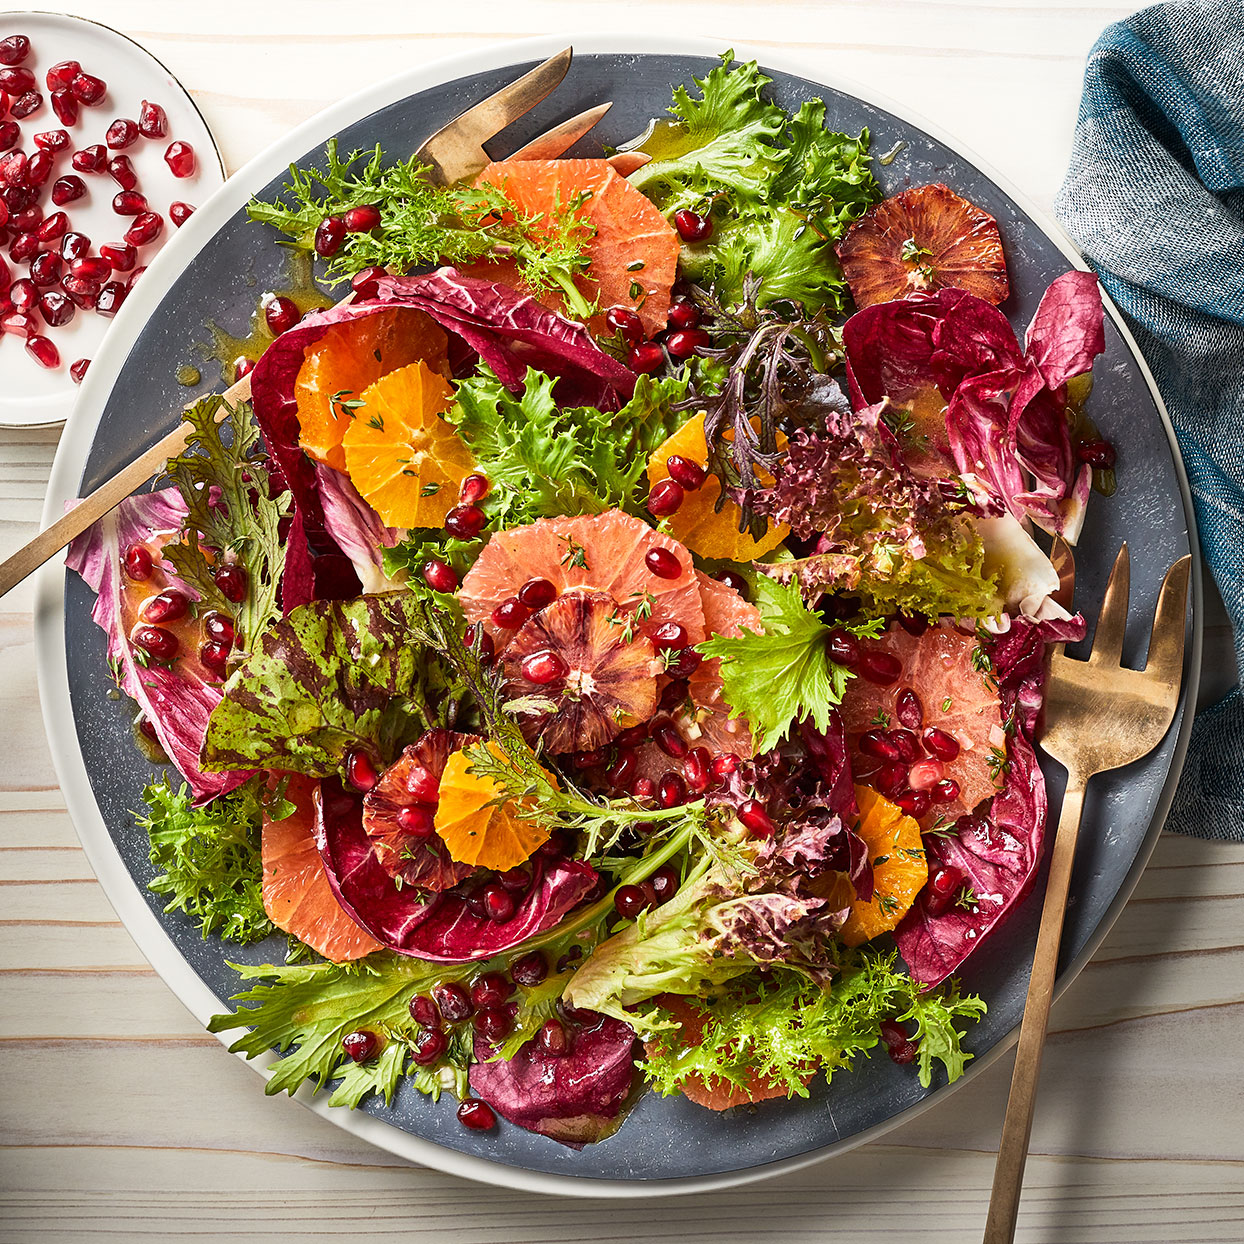 Mixed Greens & Citrus Salad Allrecipes Trusted Brands